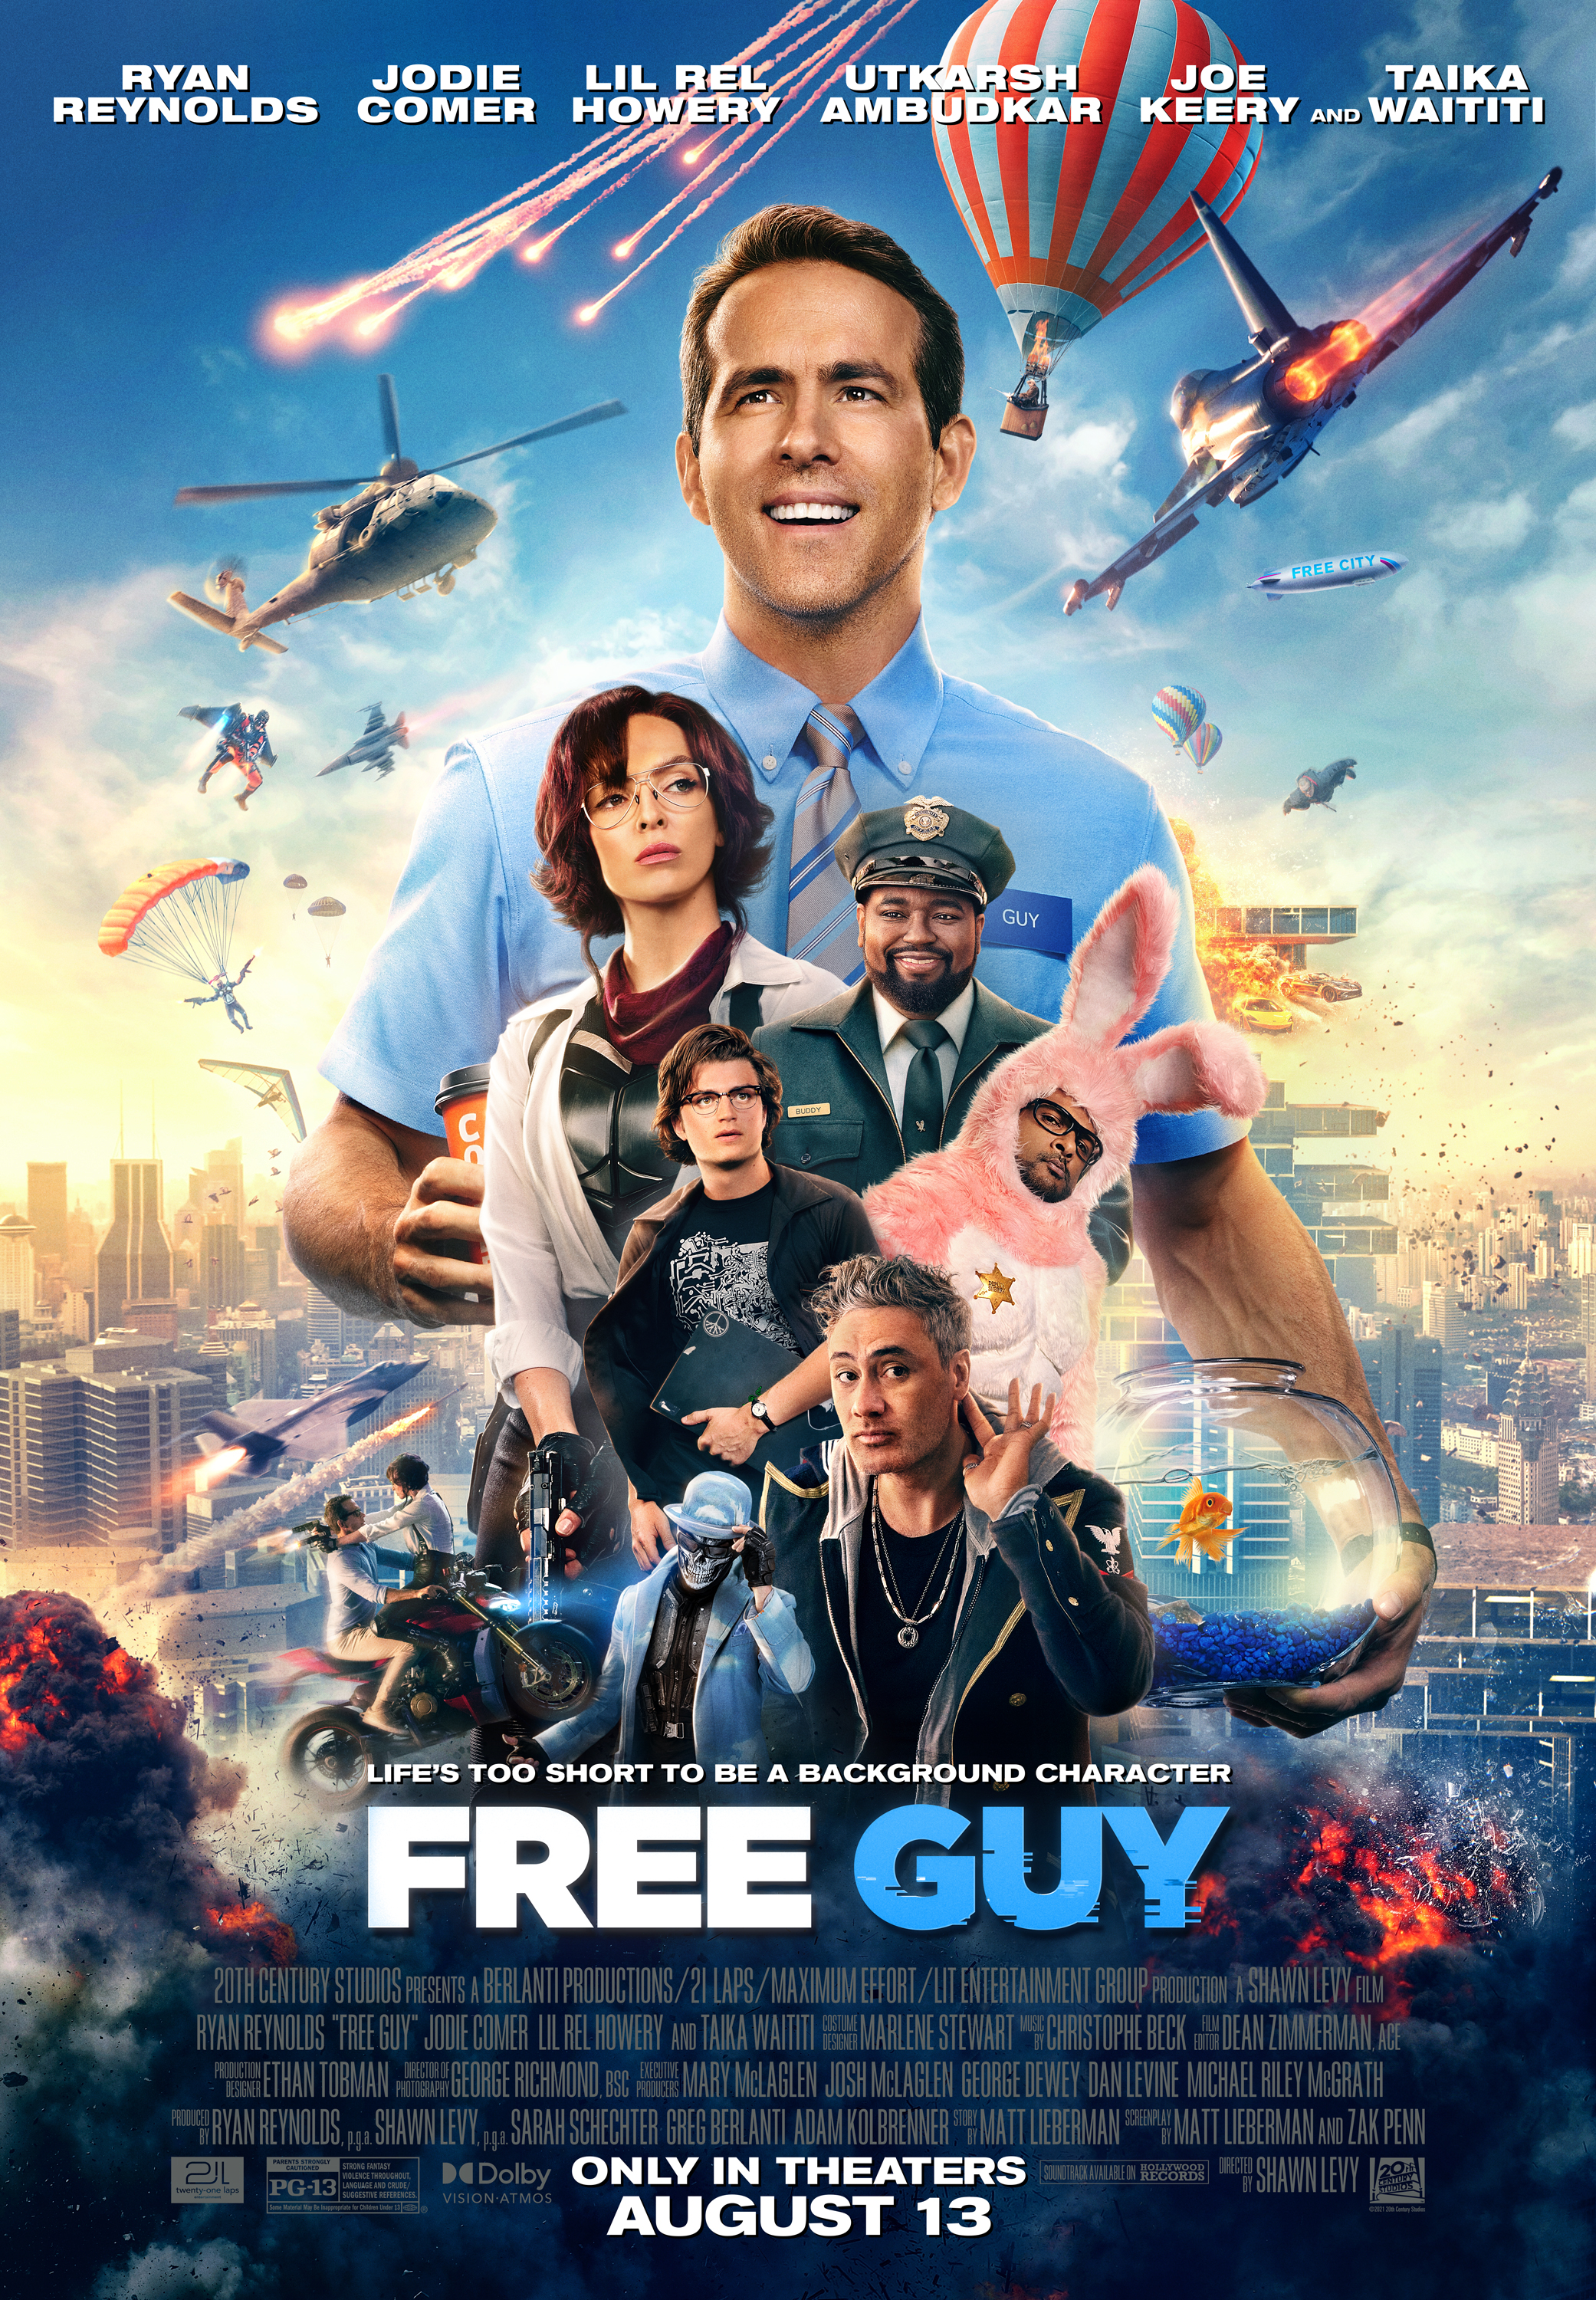 Movie poster image for FREE GUY